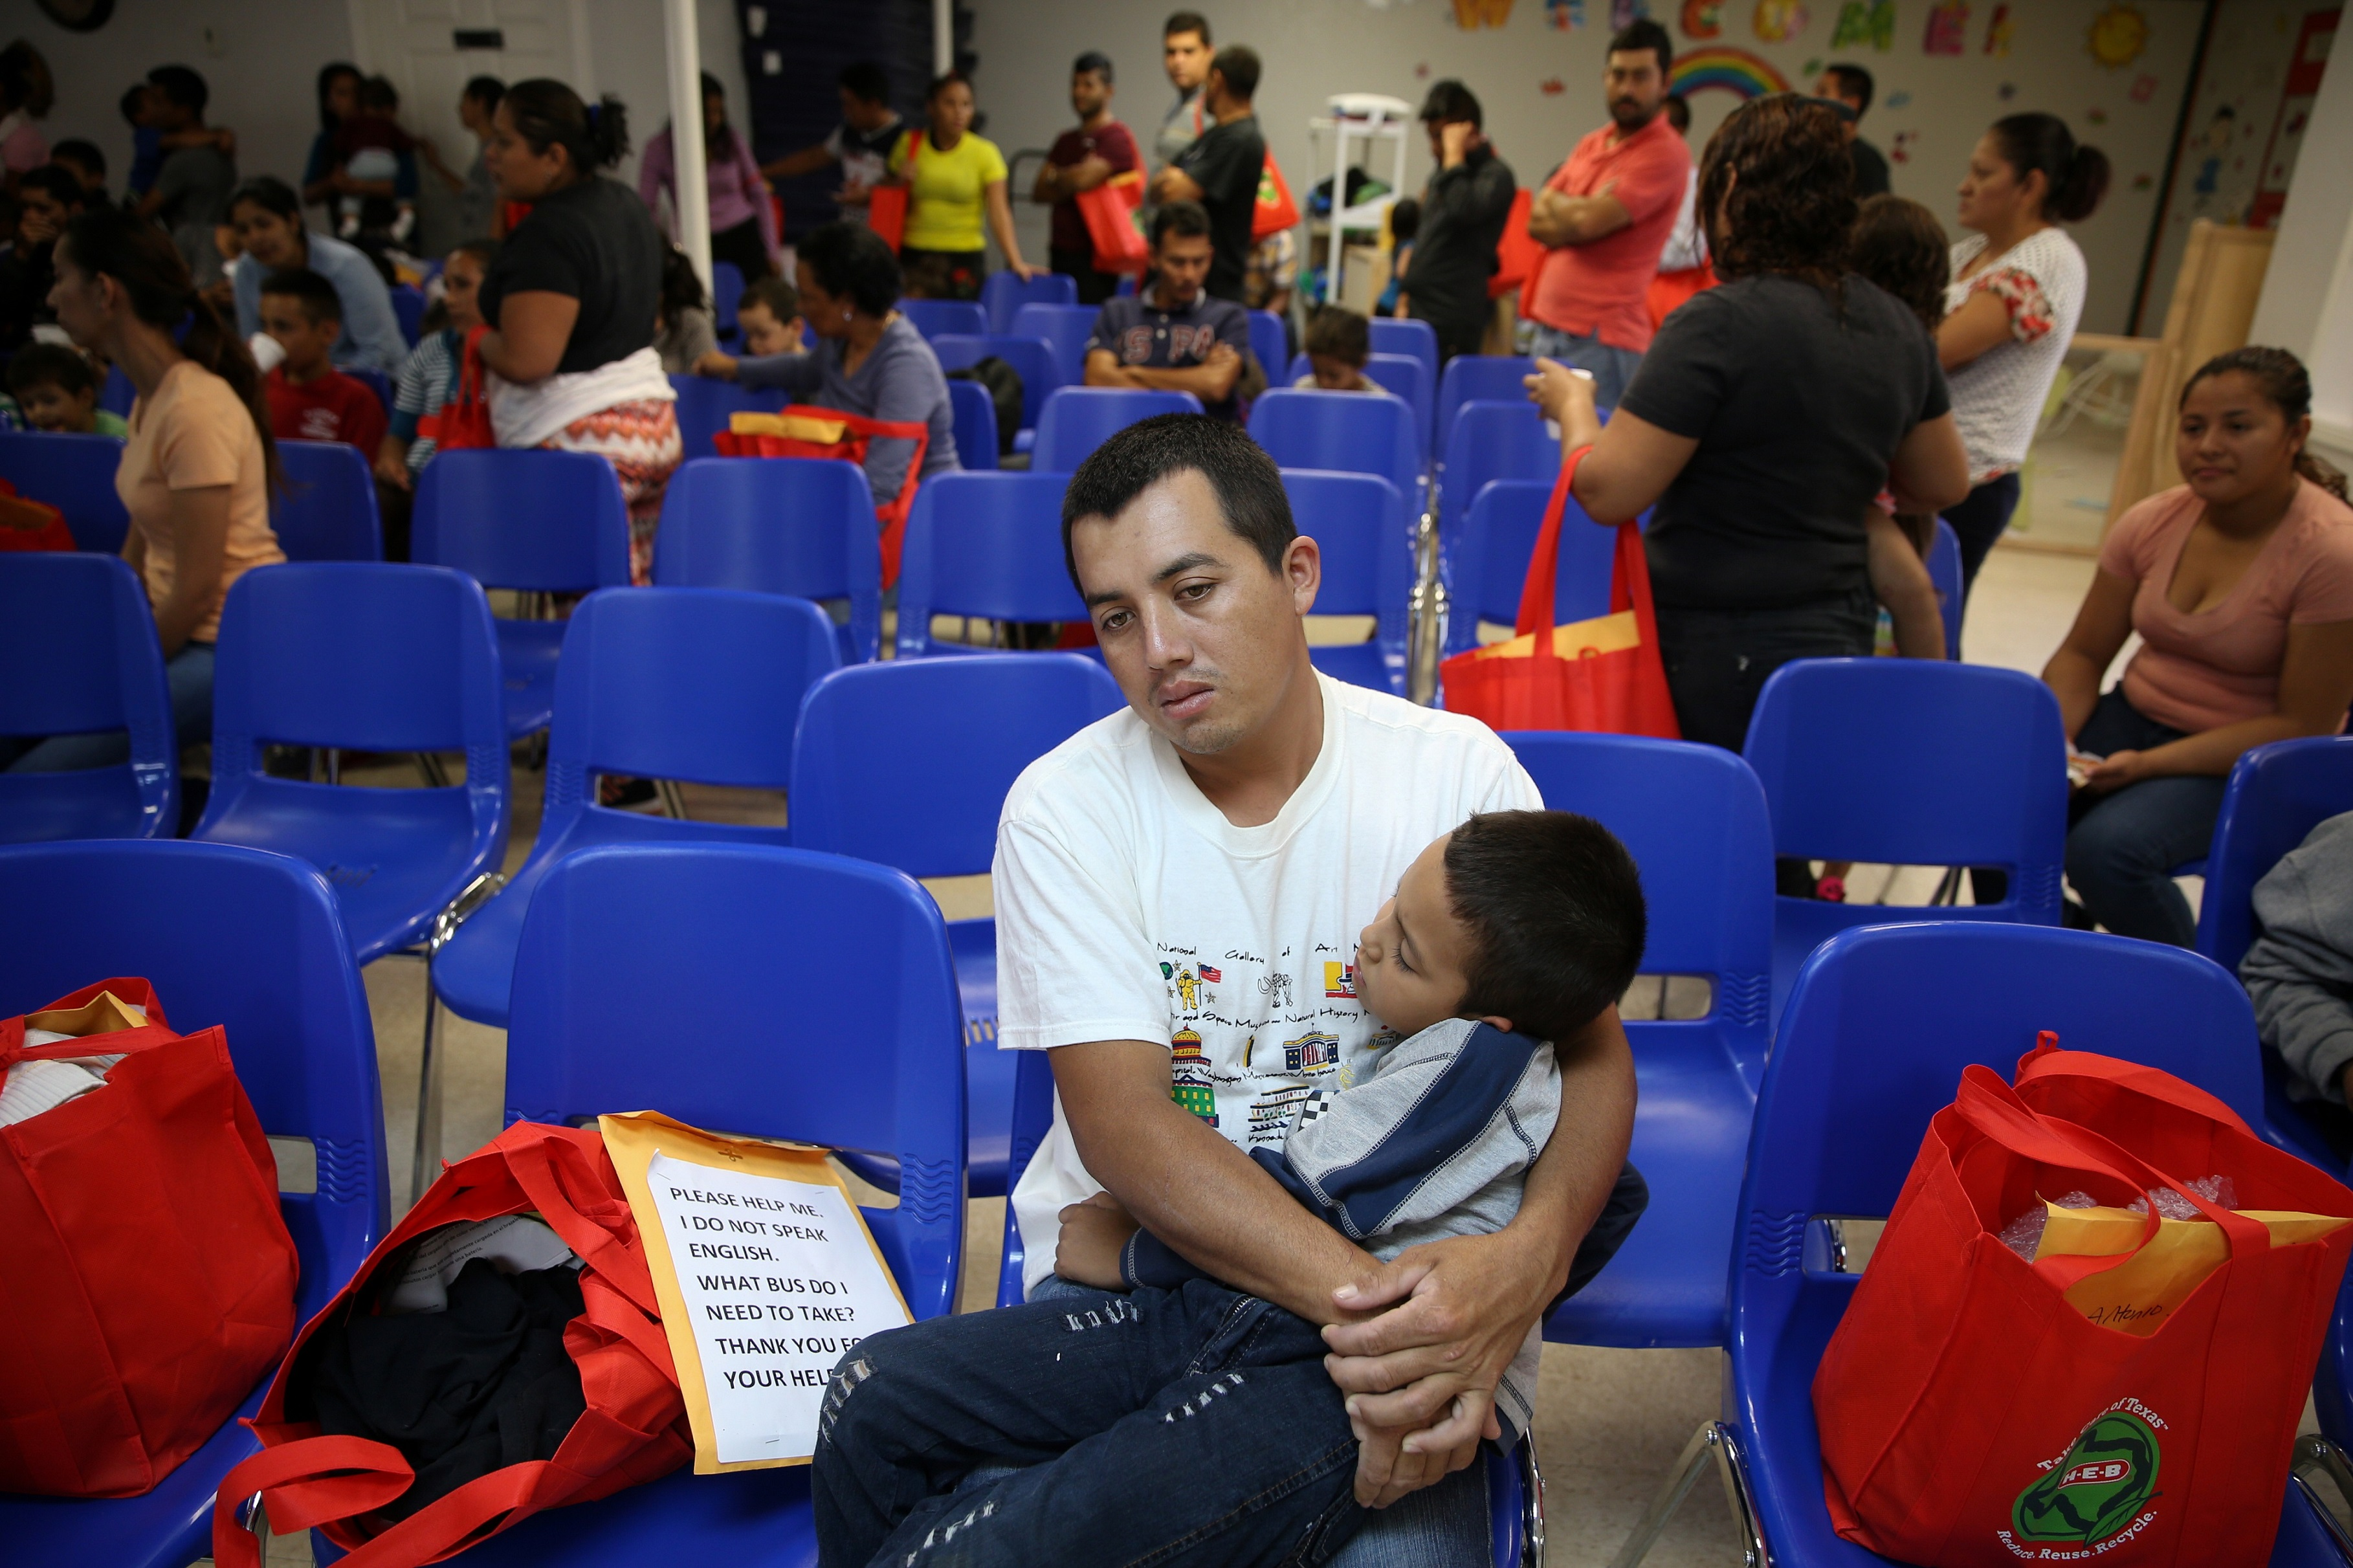 """An undocumented immigrant from Honduras and his son, recently released from detention through """"catch and release"""" immigration policy, pass the time before beginning a bus journey to Louisiana at the Catholic Charities relief center in McAllen, Texas, U.S., April 6, 2018.  REUTERS/Loren Elliott - RC1B544F5750"""